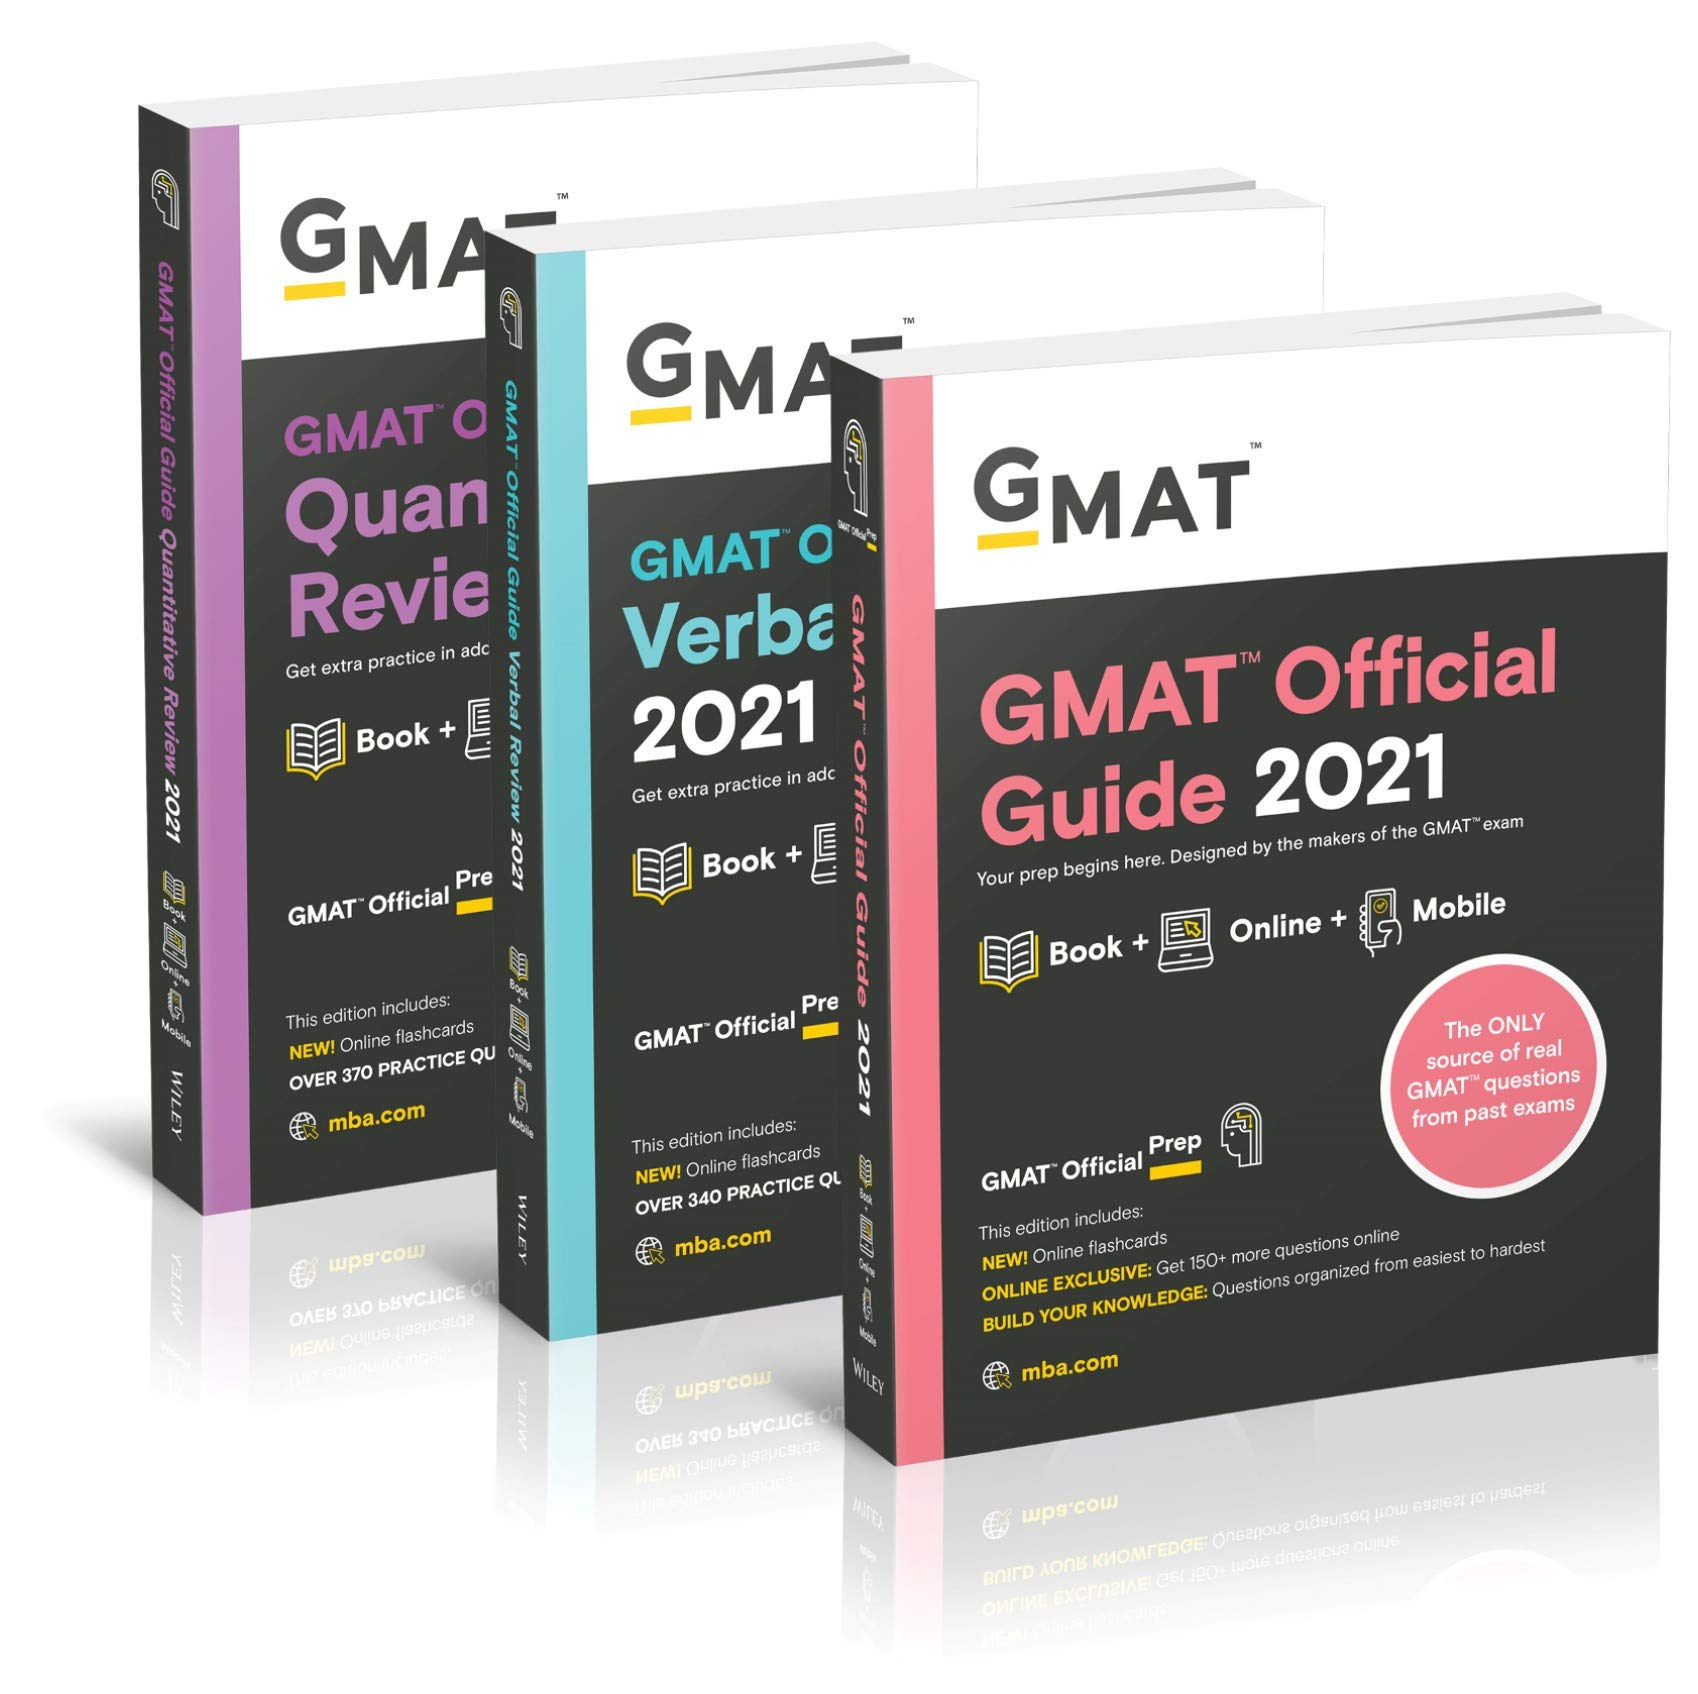 The GMAT Official Guide 2021 Review and Highlights